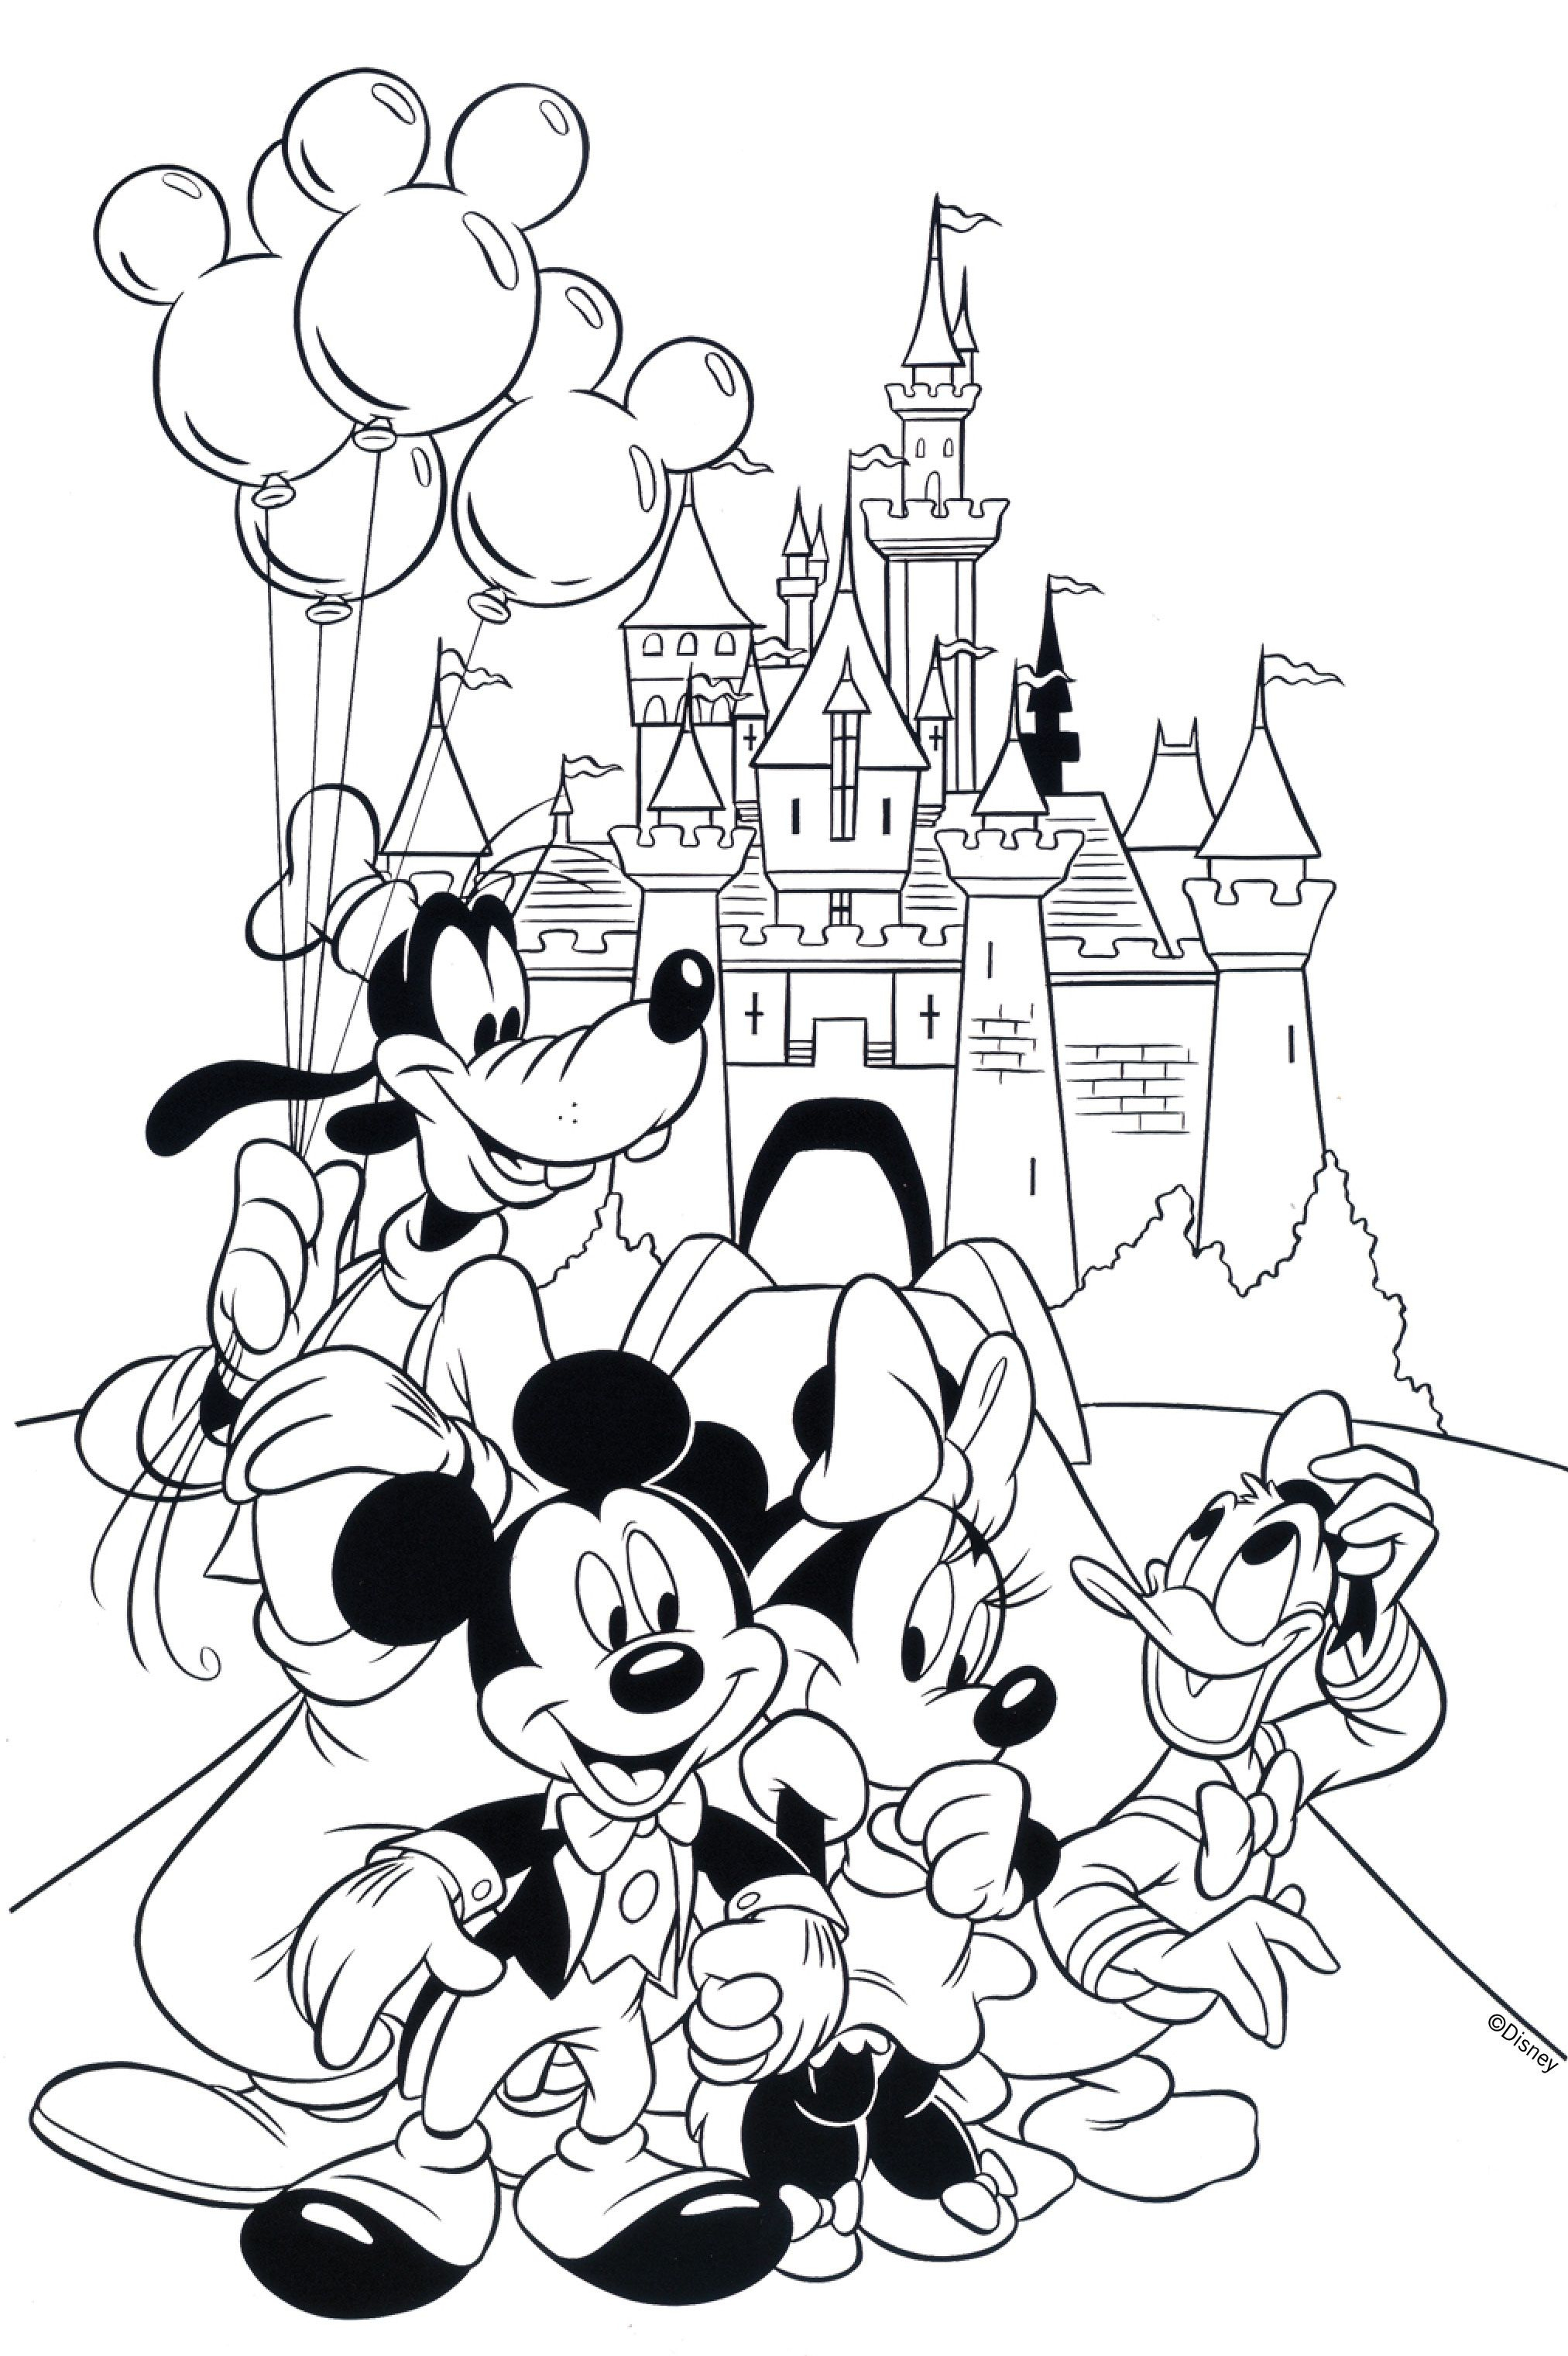 Free Disney Coloring Pages | Coloring Books | Pinterest | Coloring - Free Printable Disney Coloring Pages